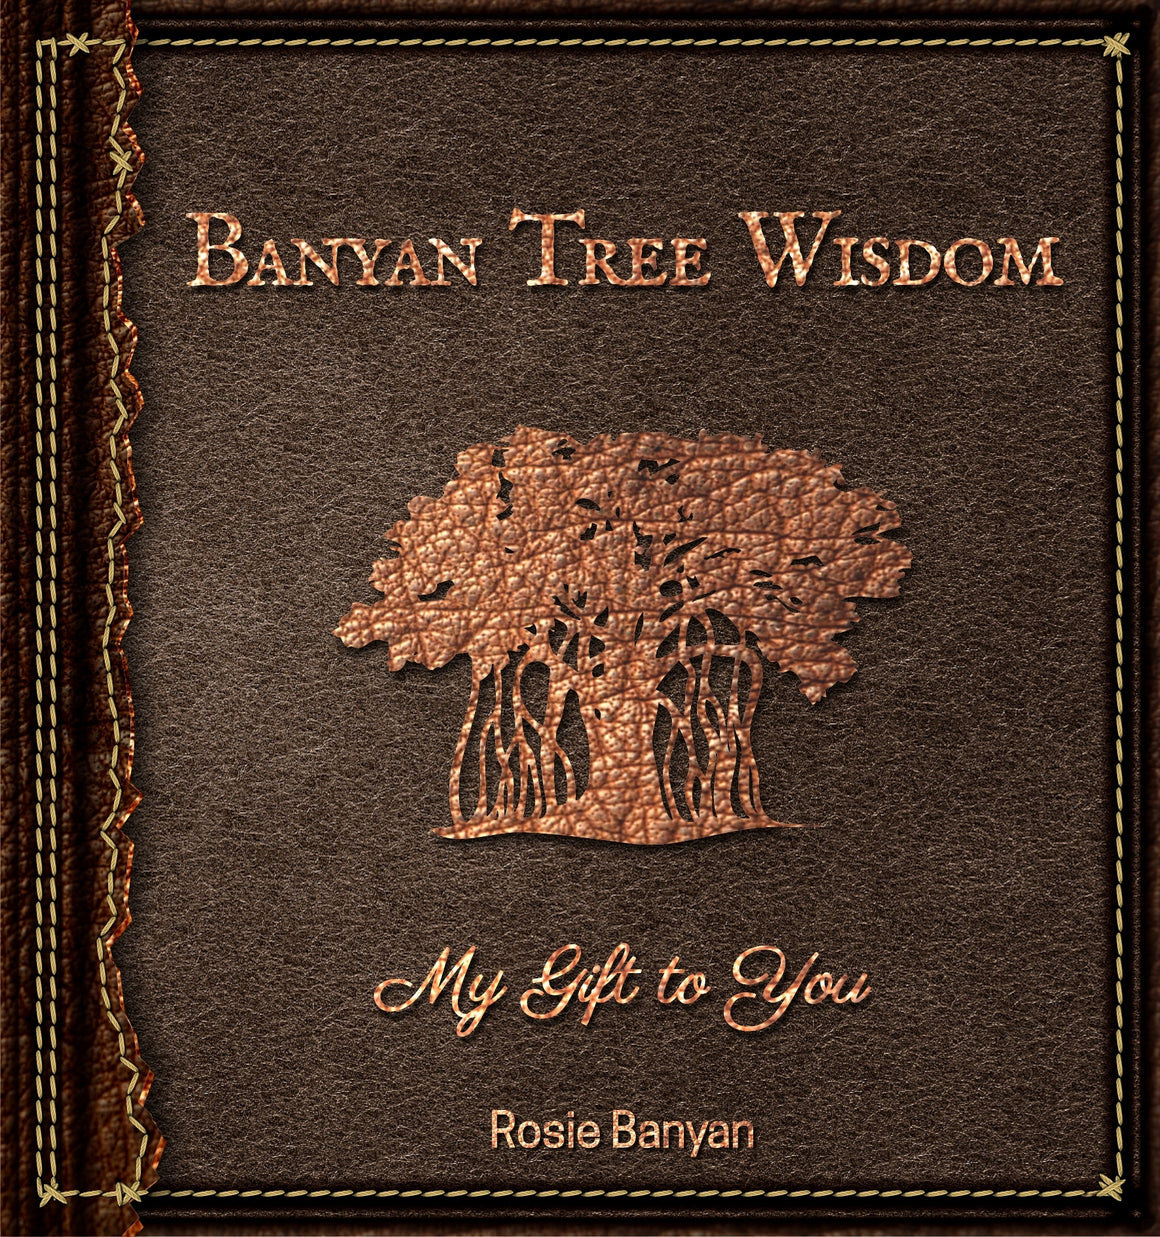 *'Banyan Tree Wisdom' - My Gift to You